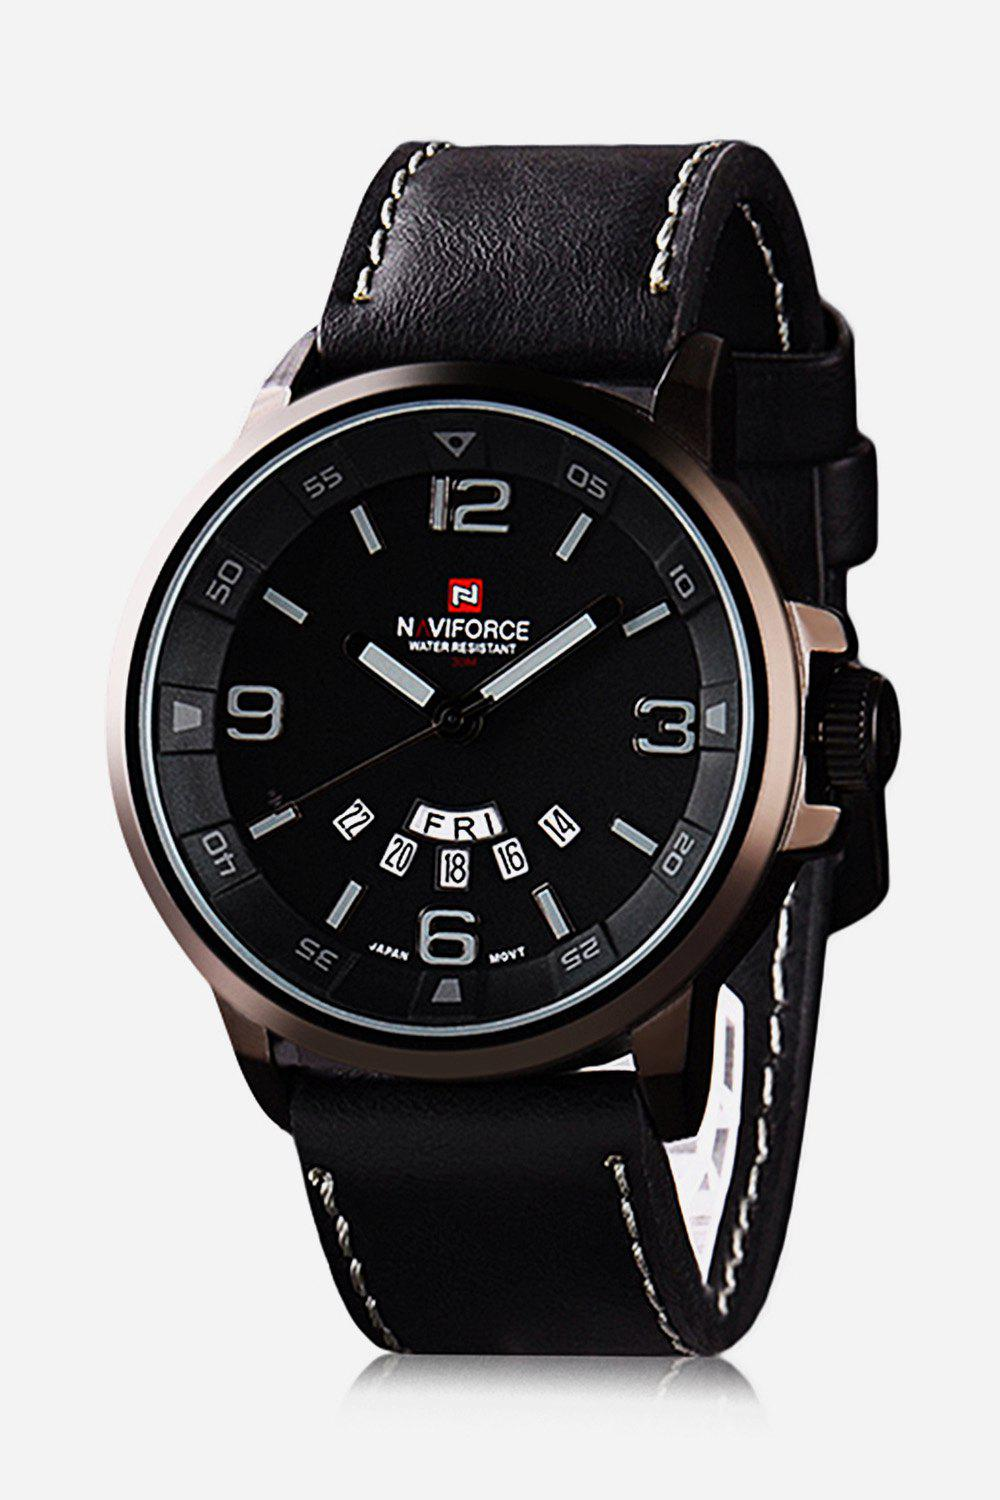 Naviforce 9028 Military Leather Band Quartz Analog Watch Japan Movt Day Date Water Resistant for Men - GUN METAL